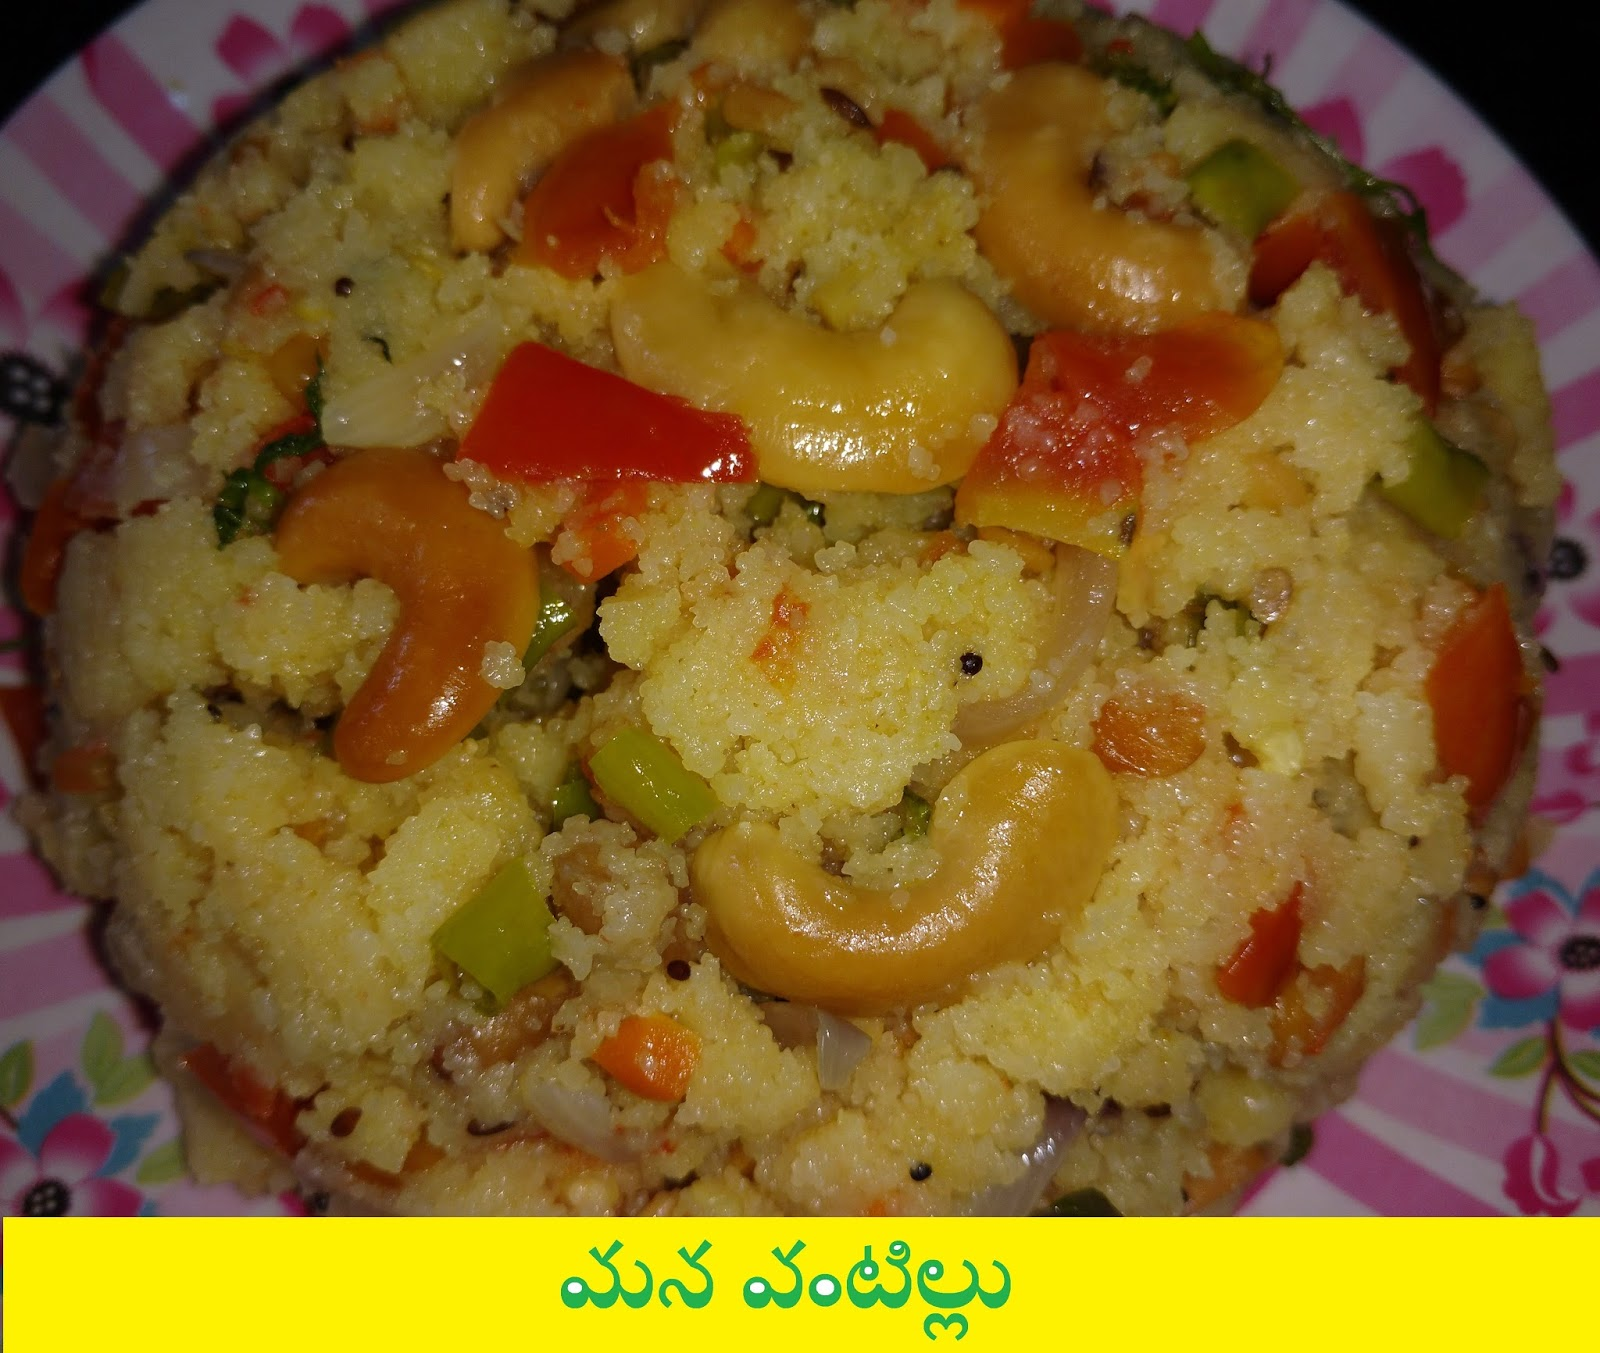 How to cook sujibombay rava upma in telugu mana vantillu cooking tasty and easily made sooji rava or bombay rava upma is ready to serve forumfinder Gallery